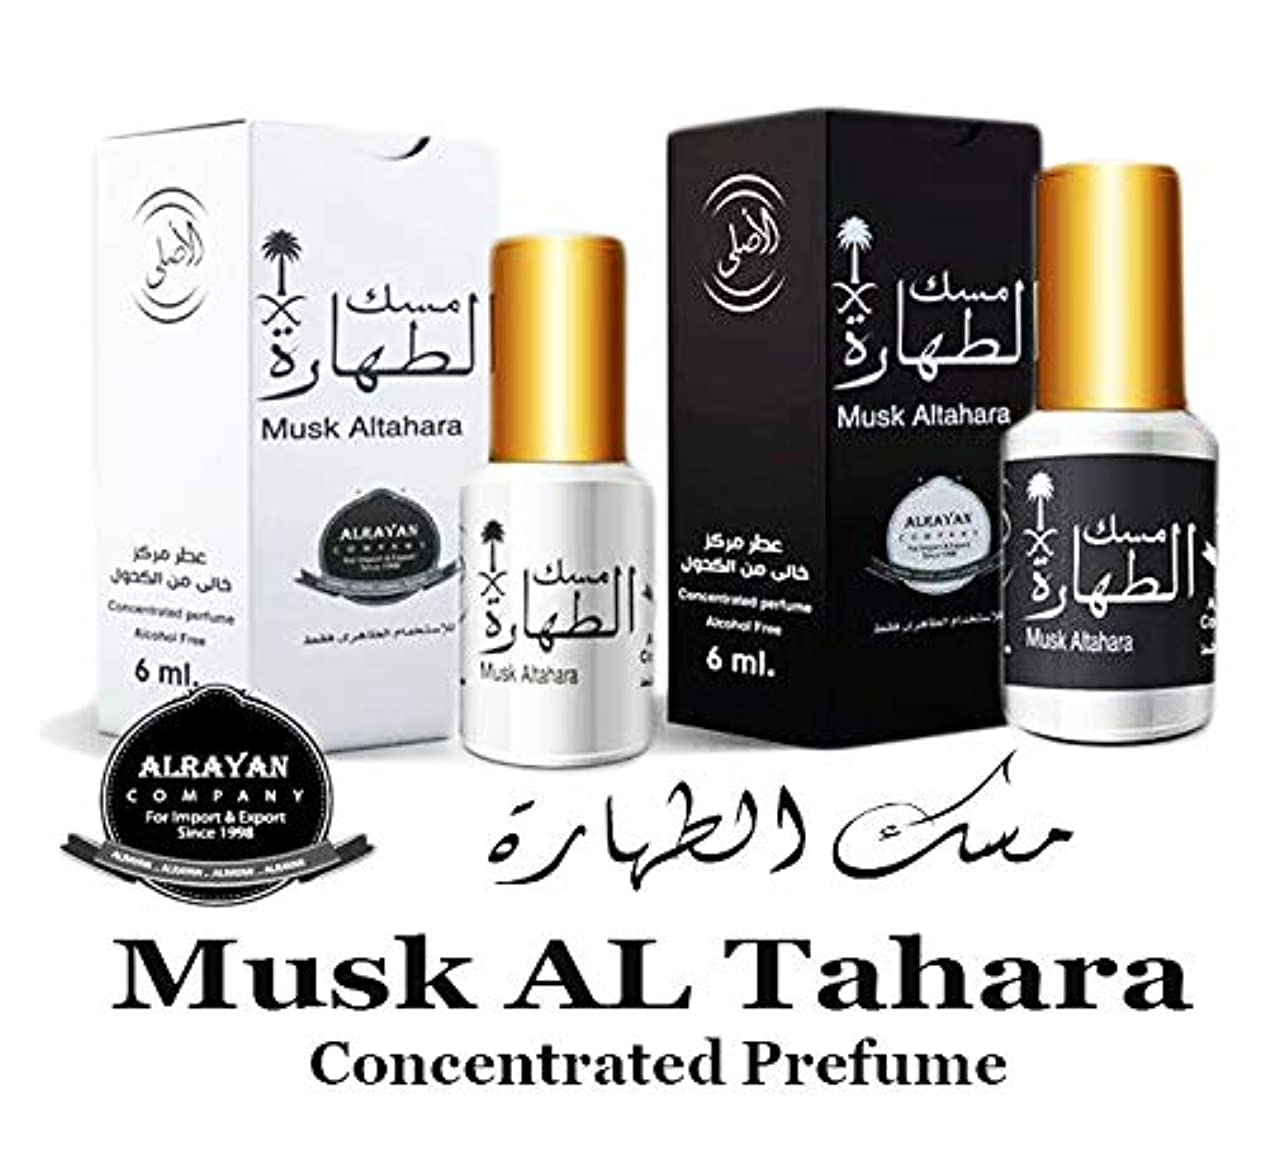 ブロー先例明確なMusk Al tahara Pure Saudi Altahara Perfume White & Black 12 ml Oil Incense Scented Unisex Body Fragrance Alcohol...